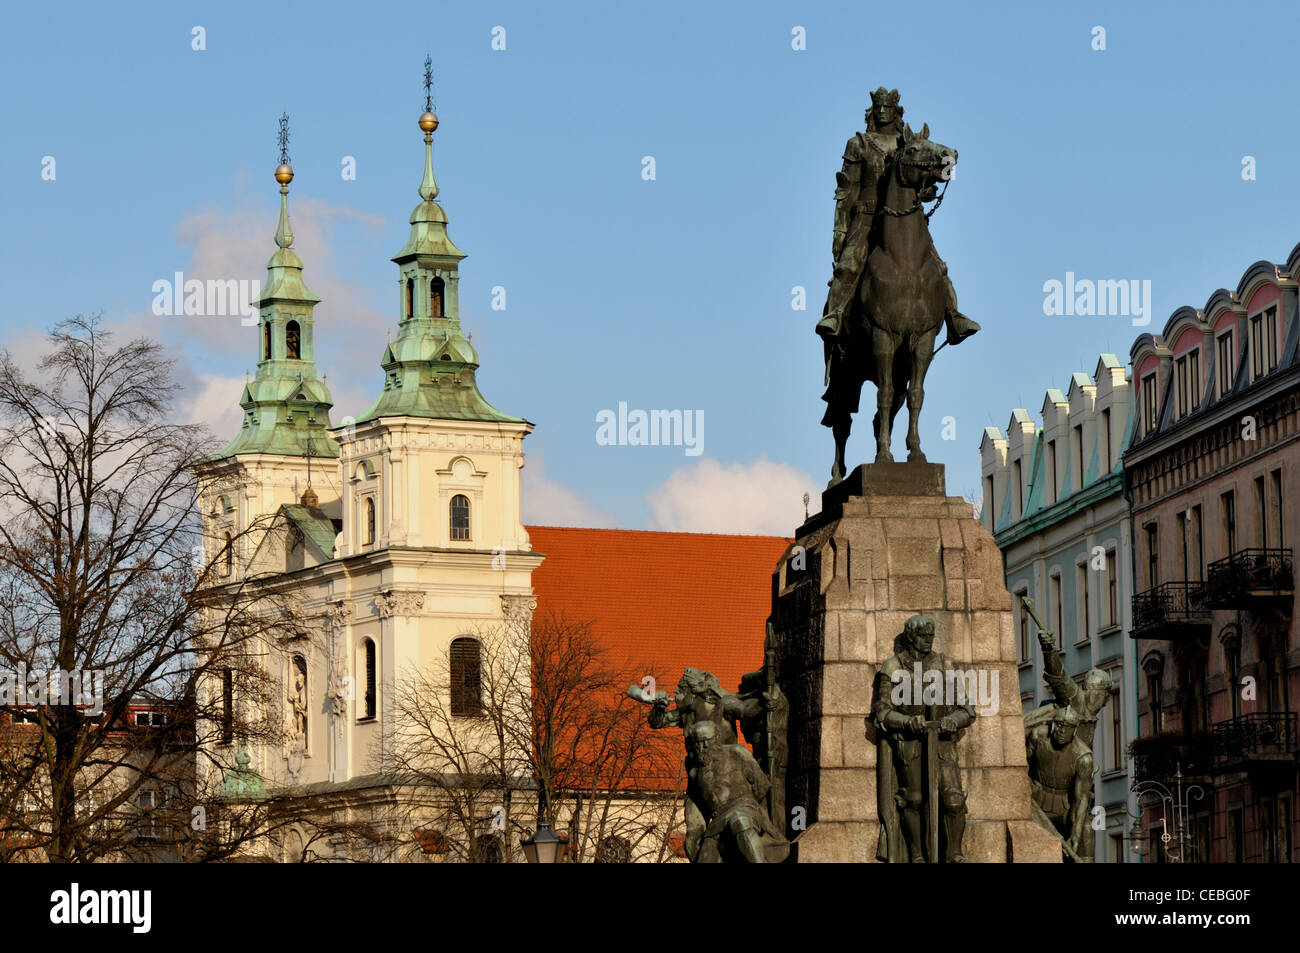 Architecture and old buildings in the city of Krakow - Stock Image